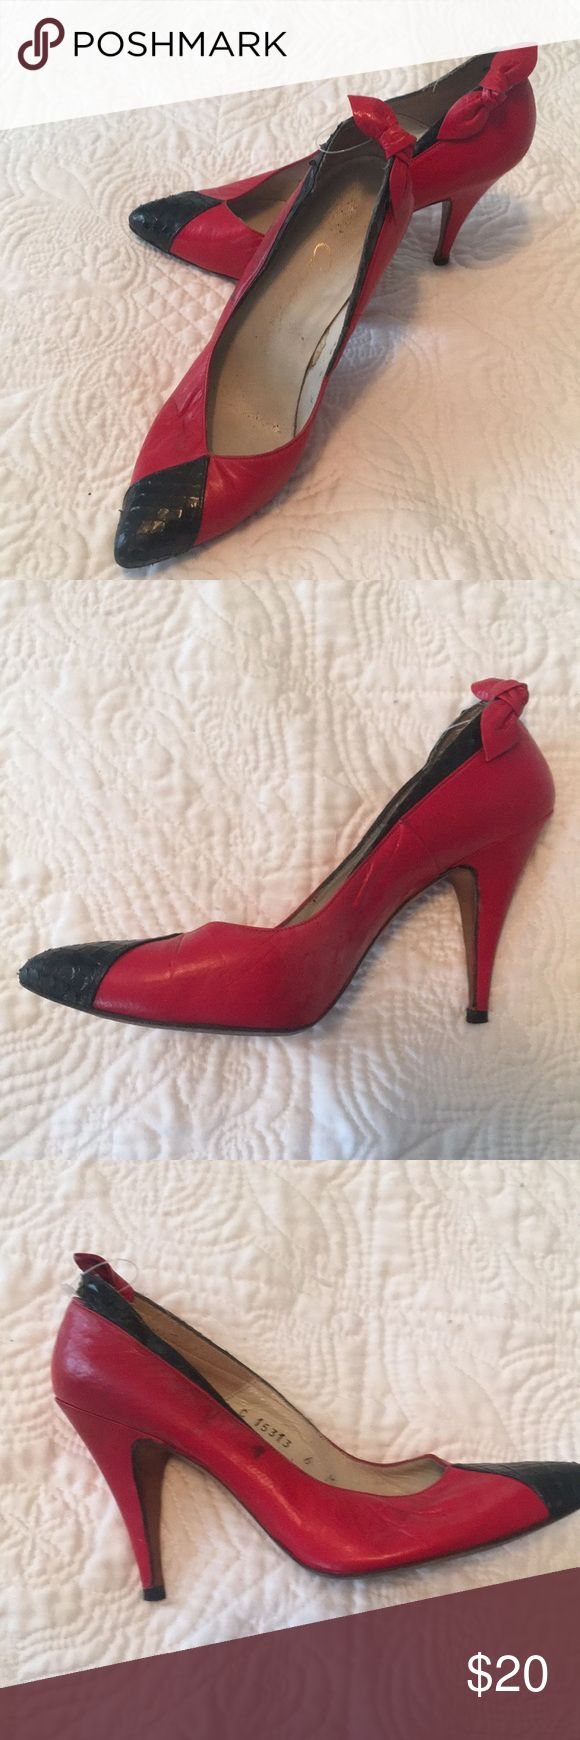 Cute vintage red and black heels with bow size 6 Cute vintage red and black heels with bow size 6. 3.5 inch heel height. These heels are vintage so have some natural wear to them. Shoes Heels